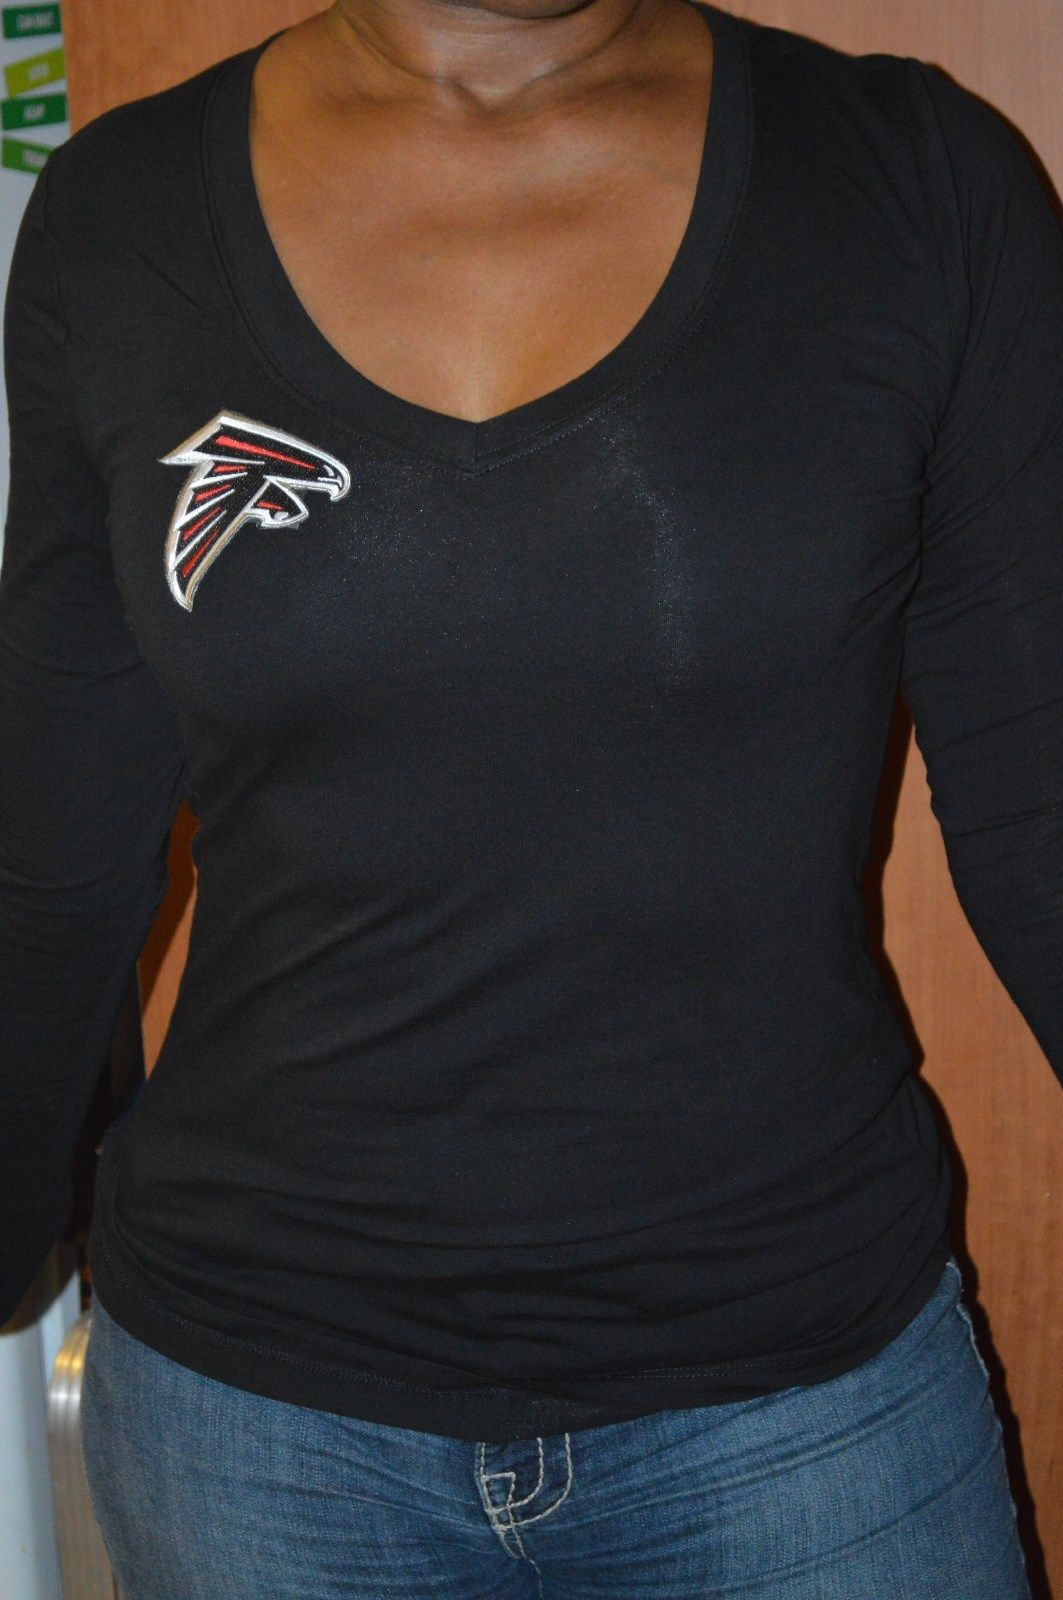 Women – NEW-SEXY-ATLANTA FALCONS-TOP-V NECK-BLACK-LONG-SHIRT-T-TANK-JERSEY -S-M-L-1X-2X-3 210e1455b7